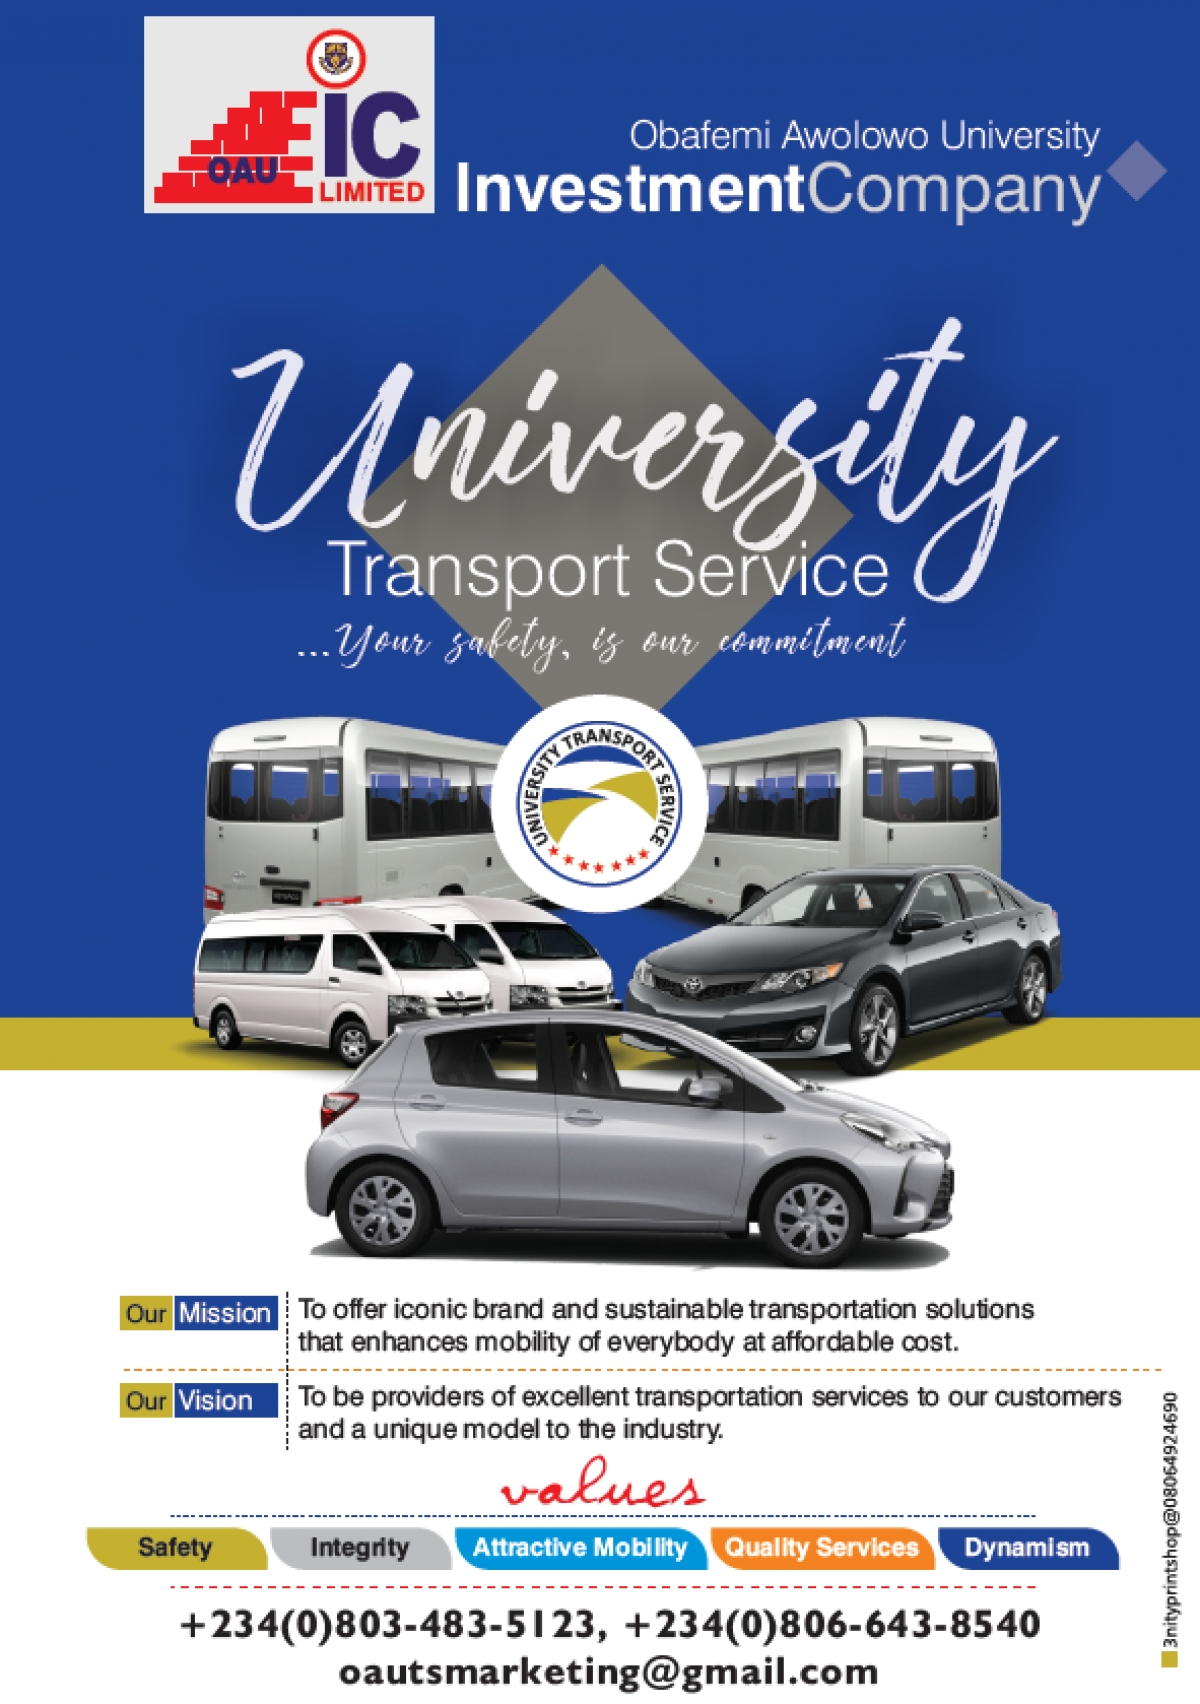 OAU Investment Company offers a Committed and Safe Transport Service